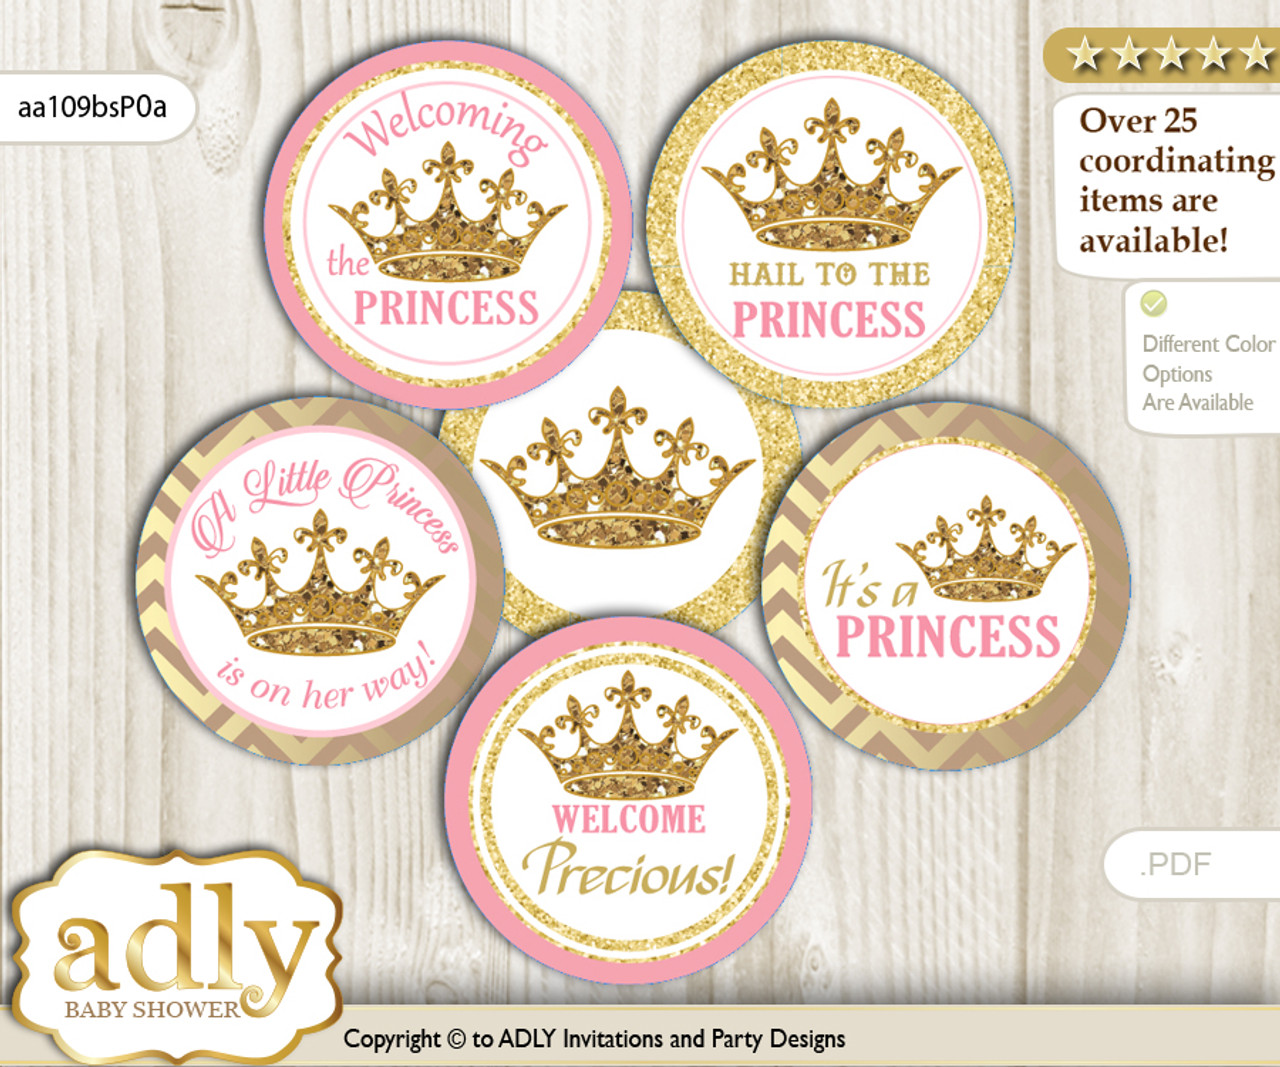 image relating to Printable Cupcakes Toppers identified as Boy or girl Shower Royal Princess Cupcake Toppers Printable Document for Tiny Royal and Mommy-towards-be, desire tags, circle toppers, Glitter, red gold m